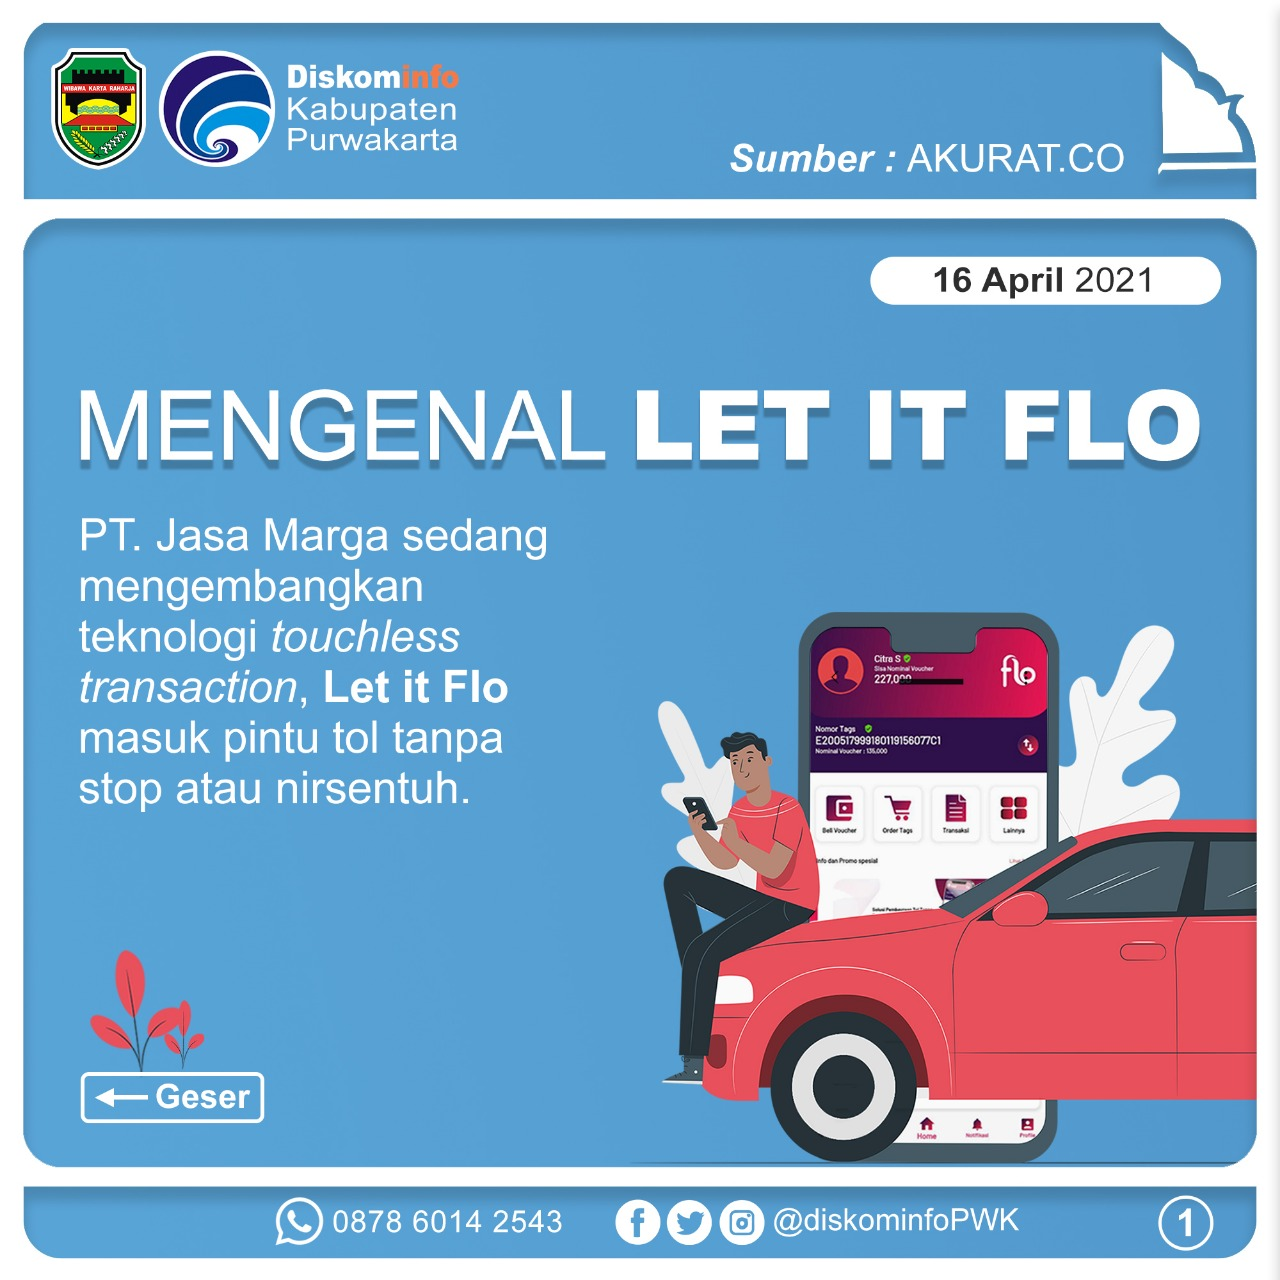 Mengenal Let it Flo